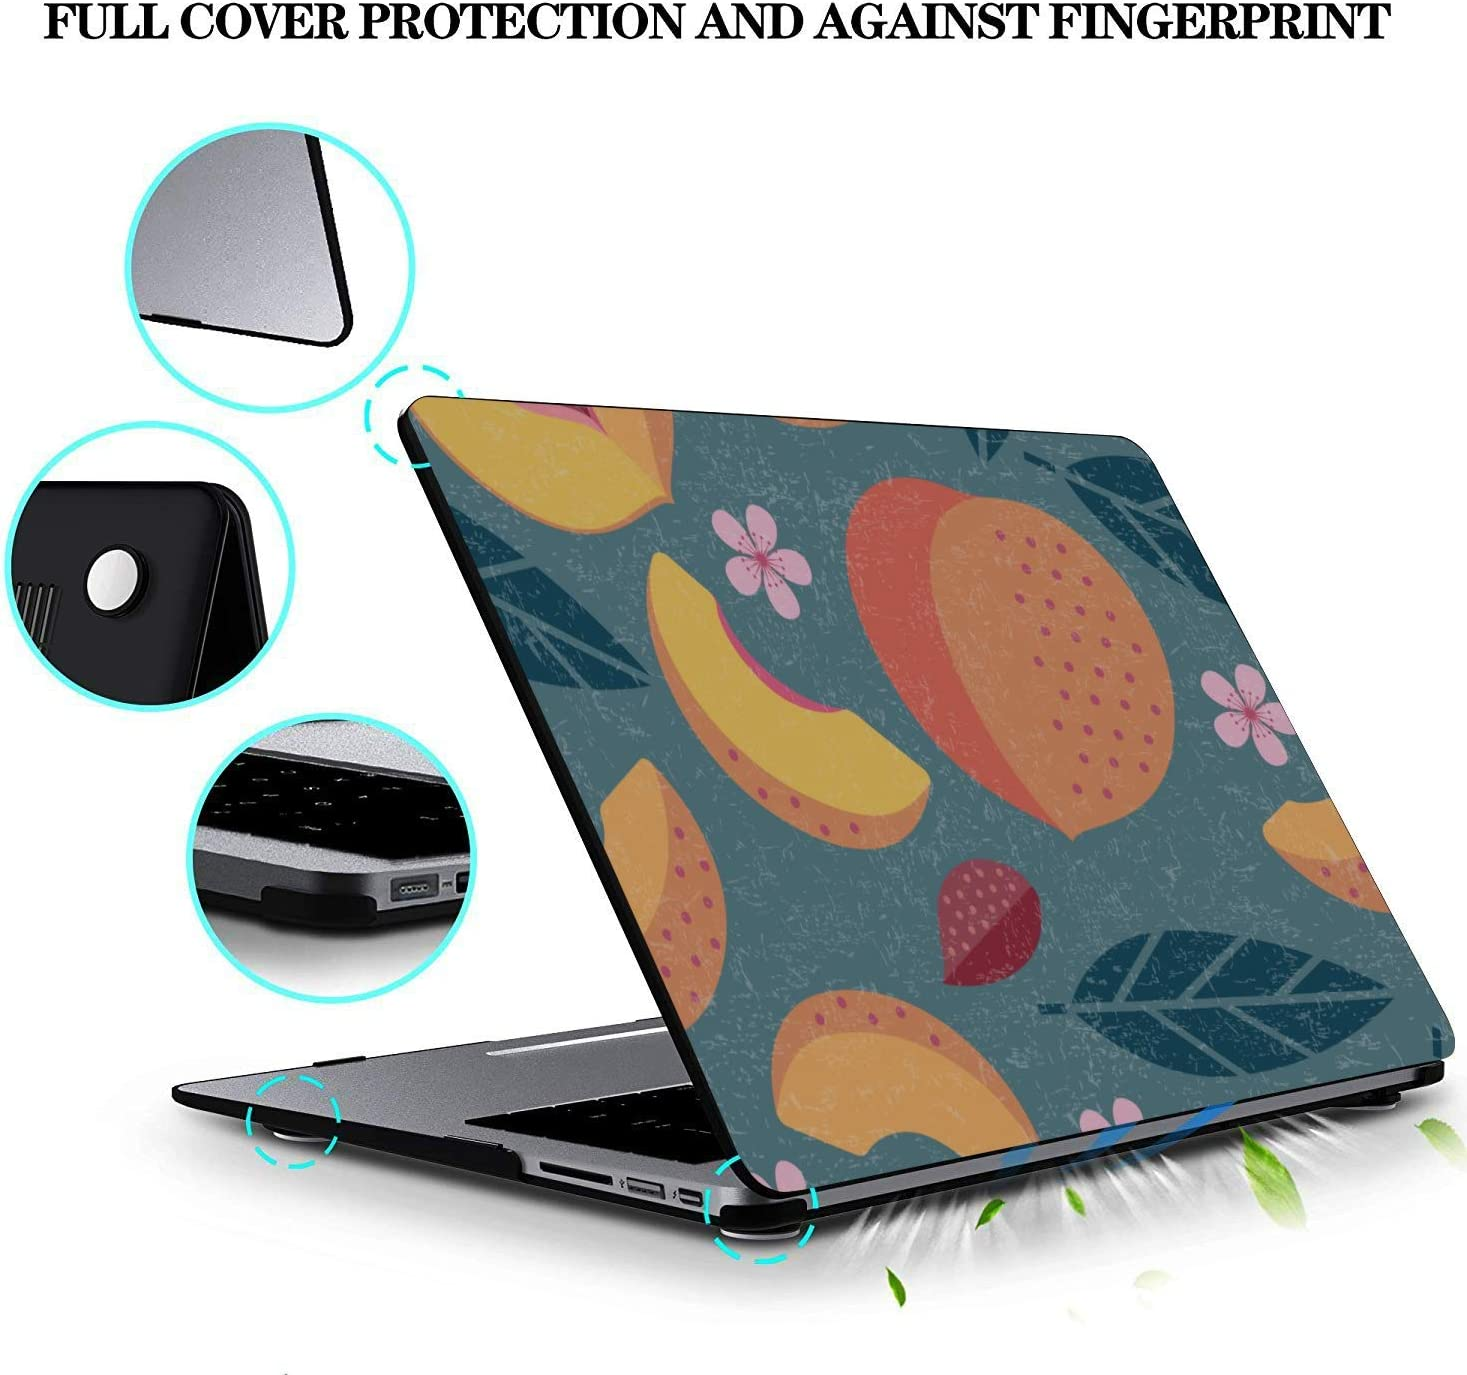 Laptop Shell Case Summer Pink Creative Fruit Peach Plastic Hard Shell Compatible Mac Air 11 Pro 13 15 MacBook Air Cover Protection for MacBook 2016-2019 Version